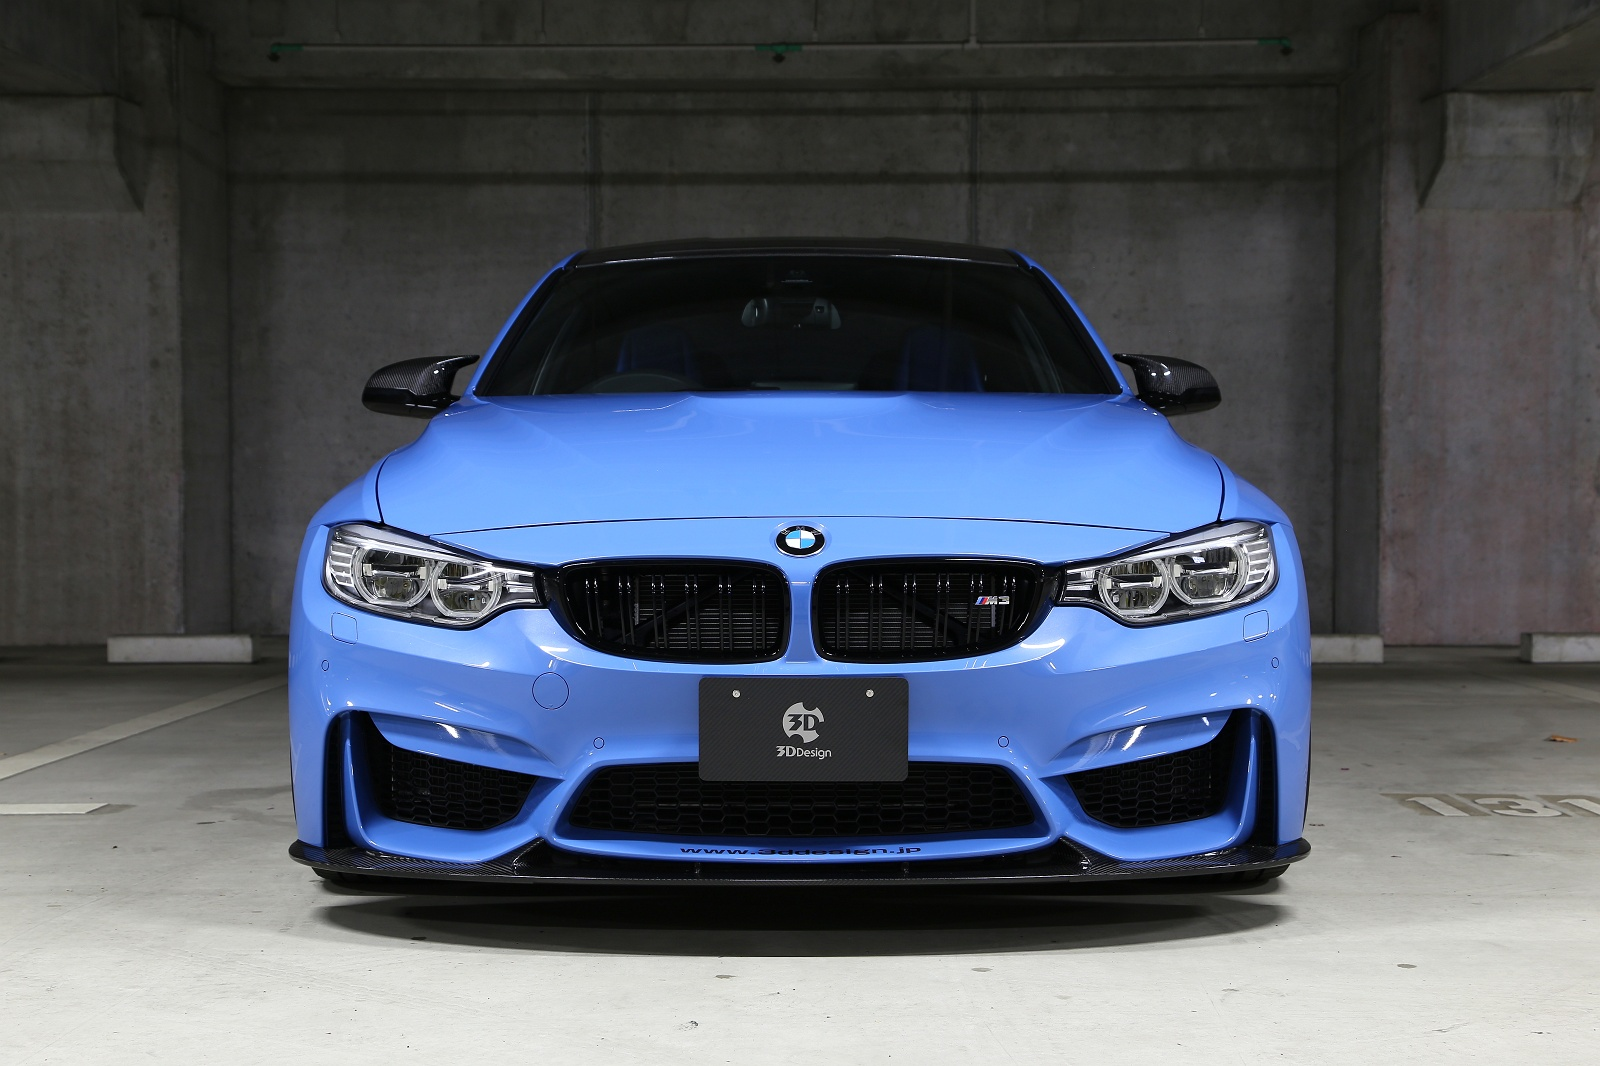 3D Design Aero Program For The BMW F80 M3 Image 6